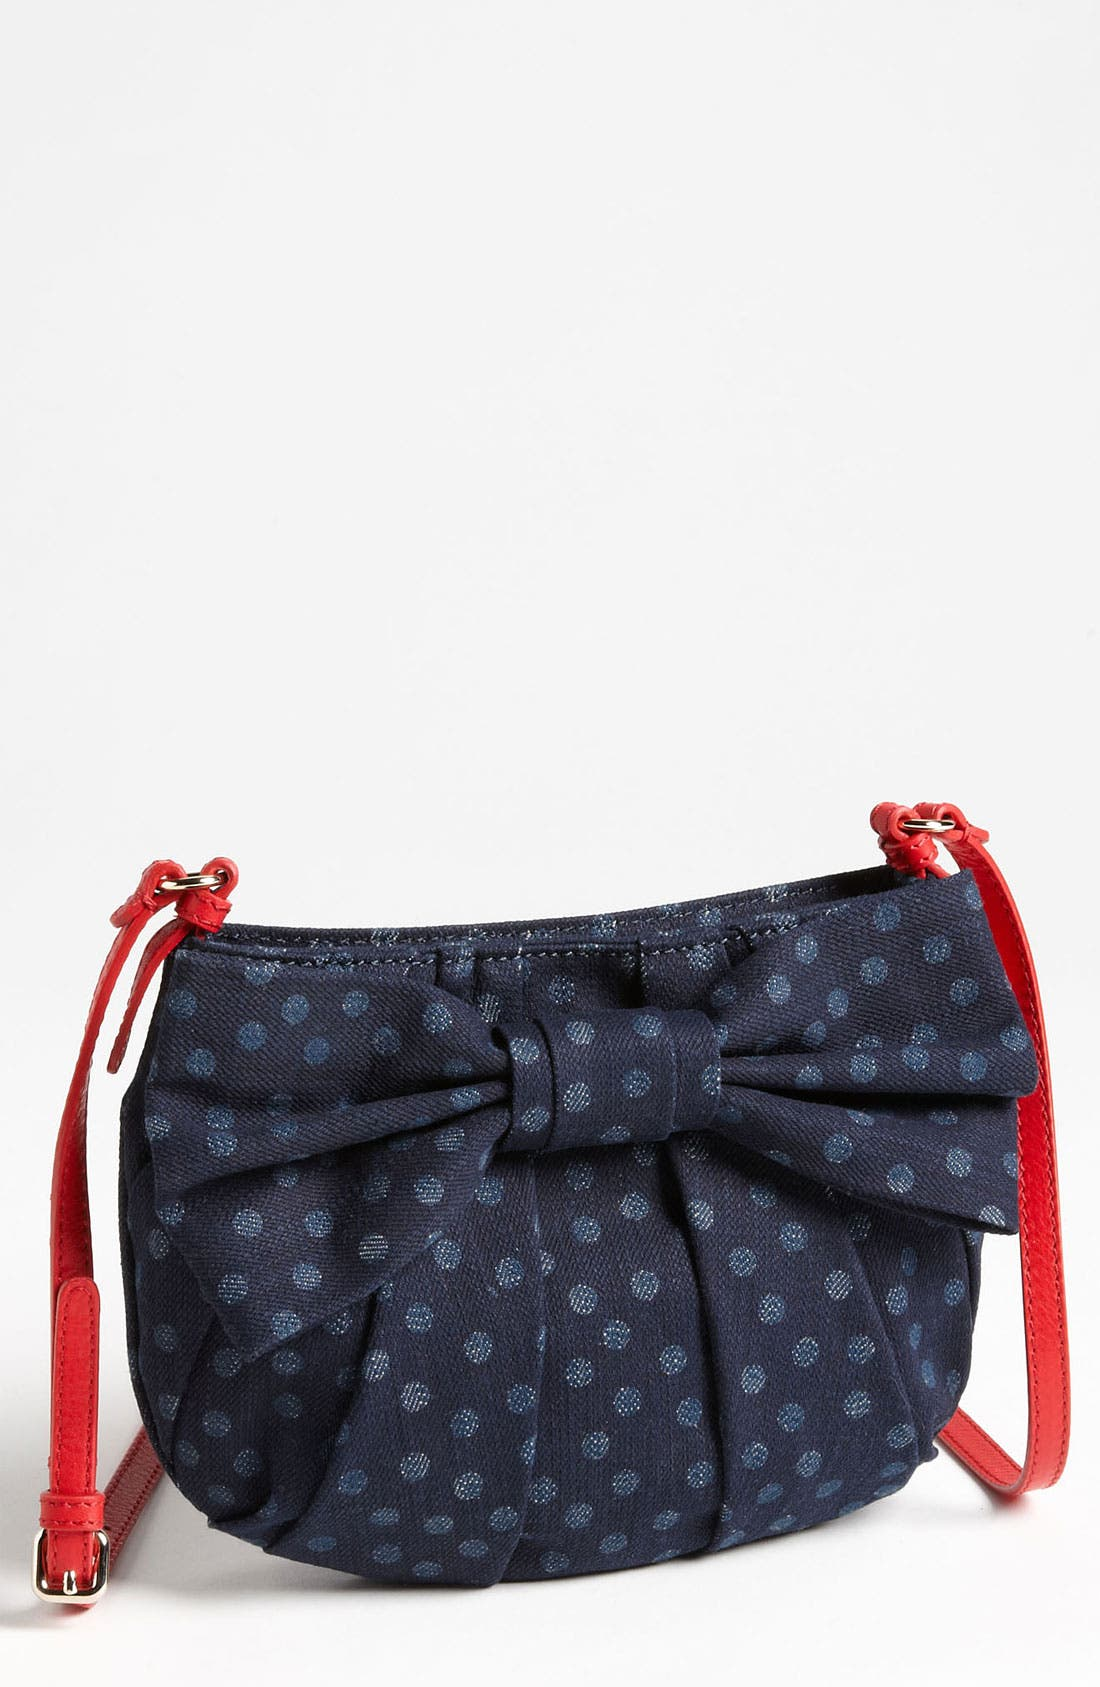 Alternate Image 1 Selected - RED Valentino 'Bow' Denim Crossbody Bag